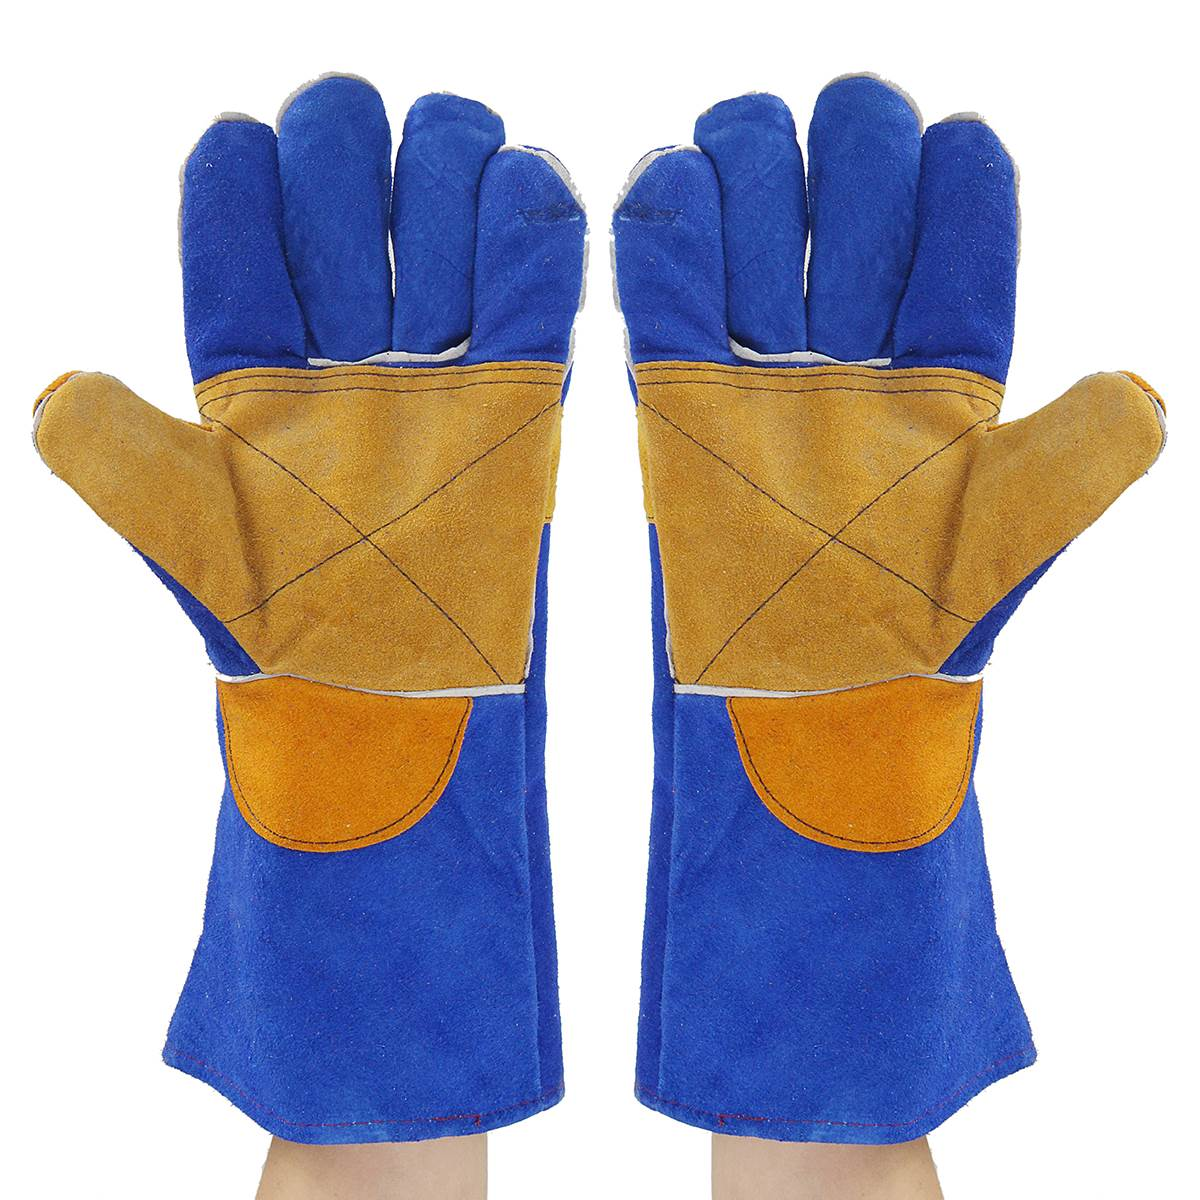 NEW 35/40cm Heavy Duty Welding Gloves Leather Cowhide Protect Welder Hands 2 Sizes  Workplace  Safety Gloves welder machine plasma cutter welder mask for welder machine